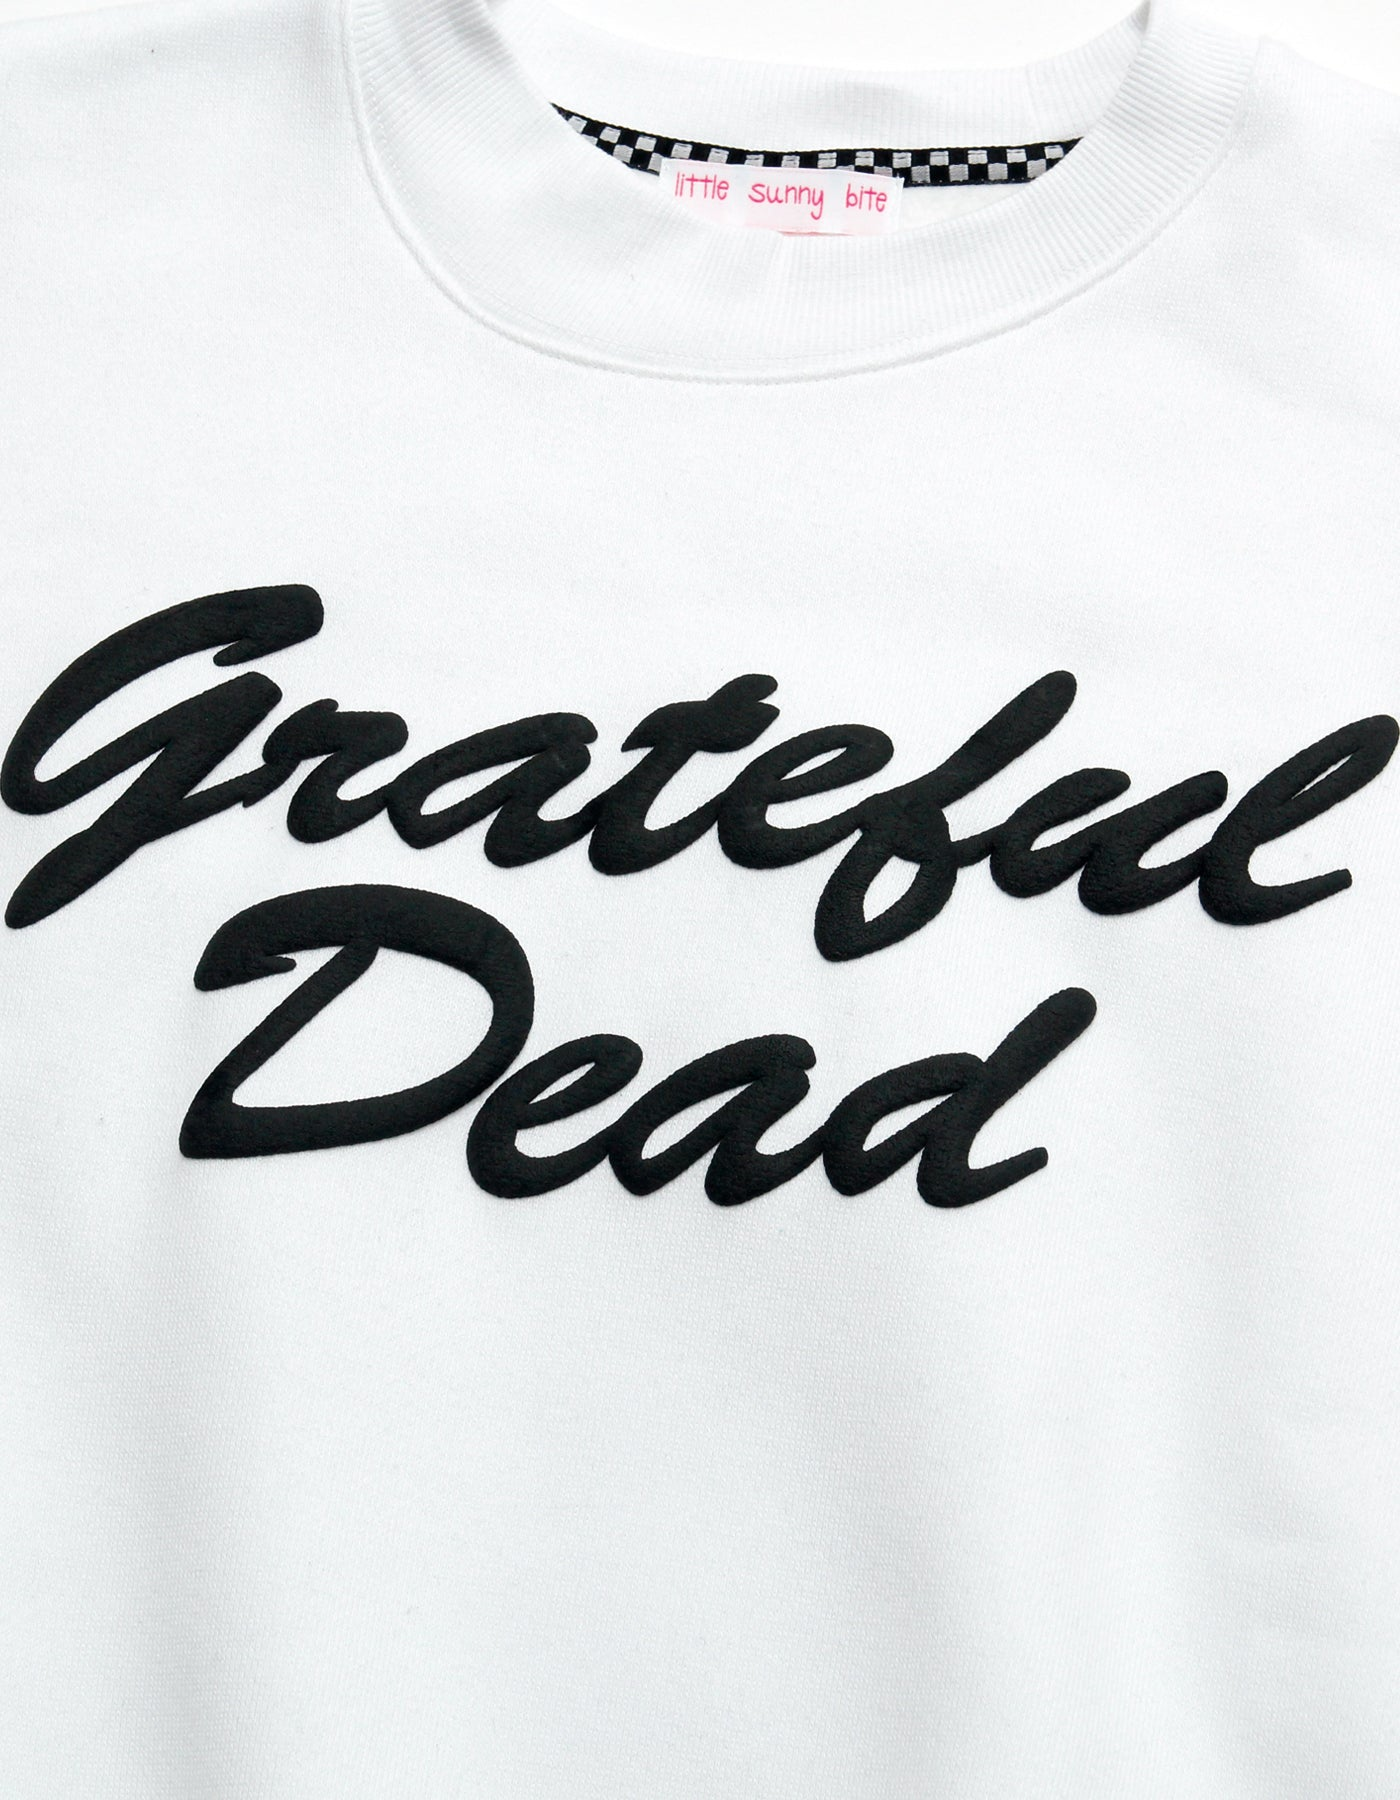 Grateful Dead x little sunny bite Print sweat top / WHITE